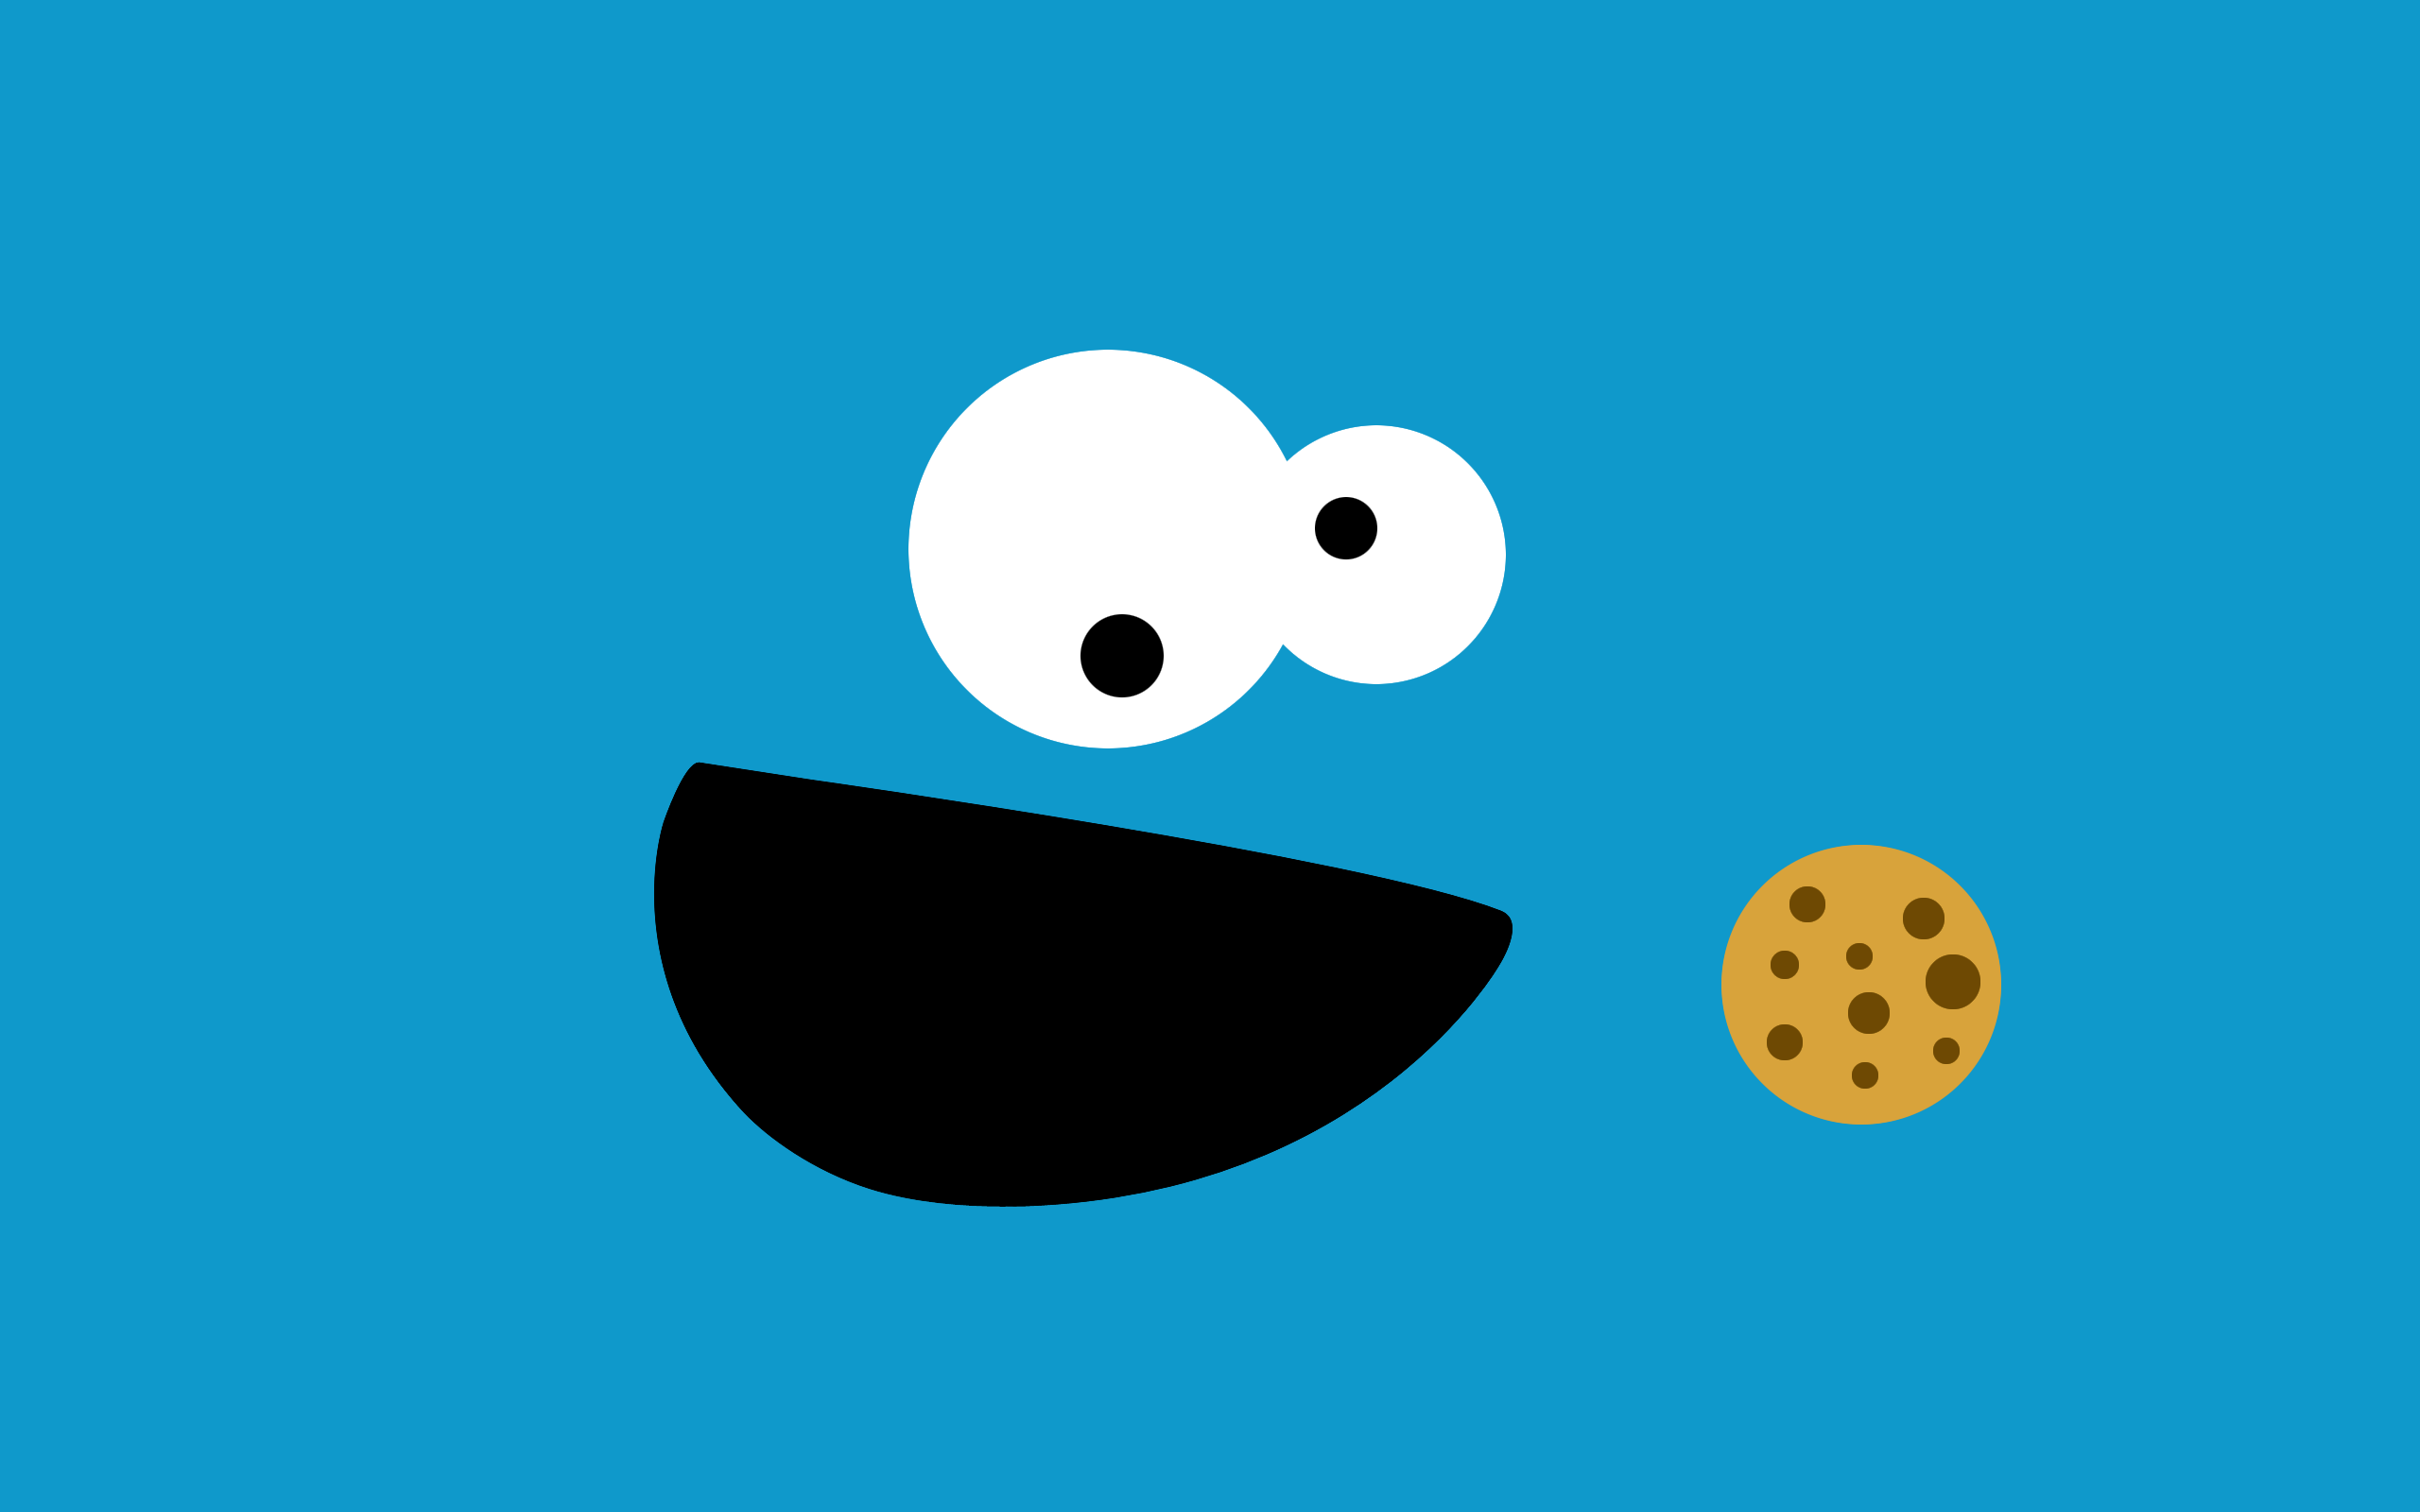 Cookie Monster Wallpaper 16789 2560x1600 px HDWallSourcecom